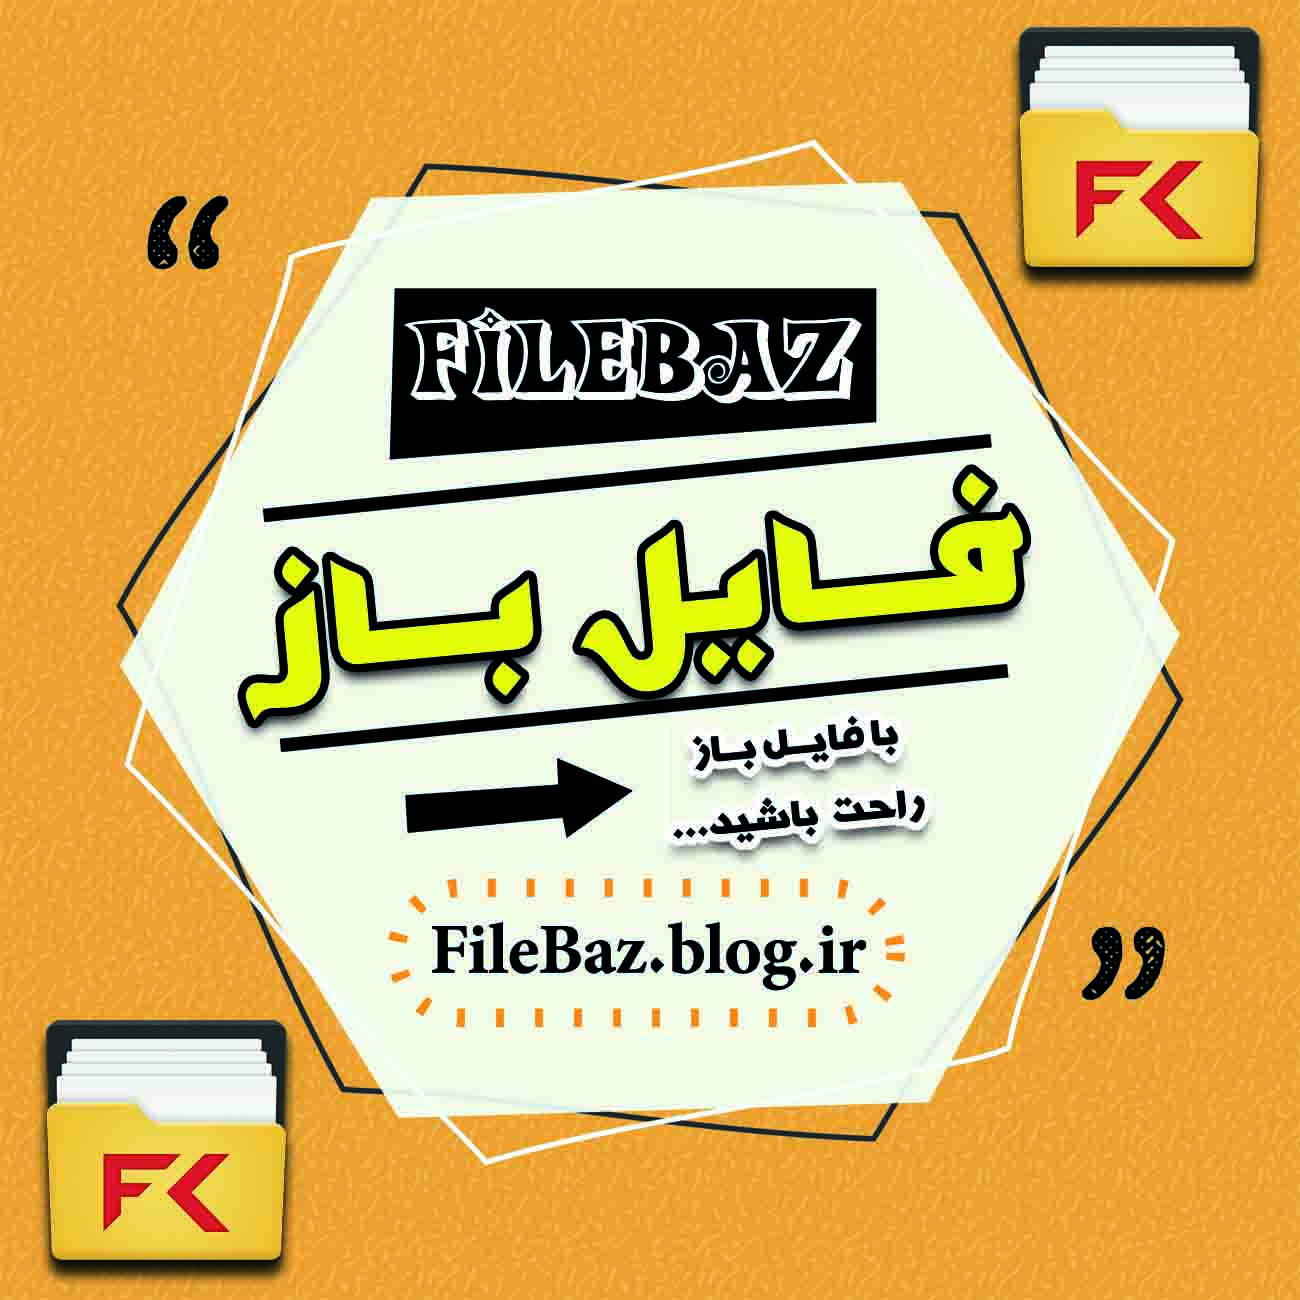 فایـــل بــاز | FileBaz